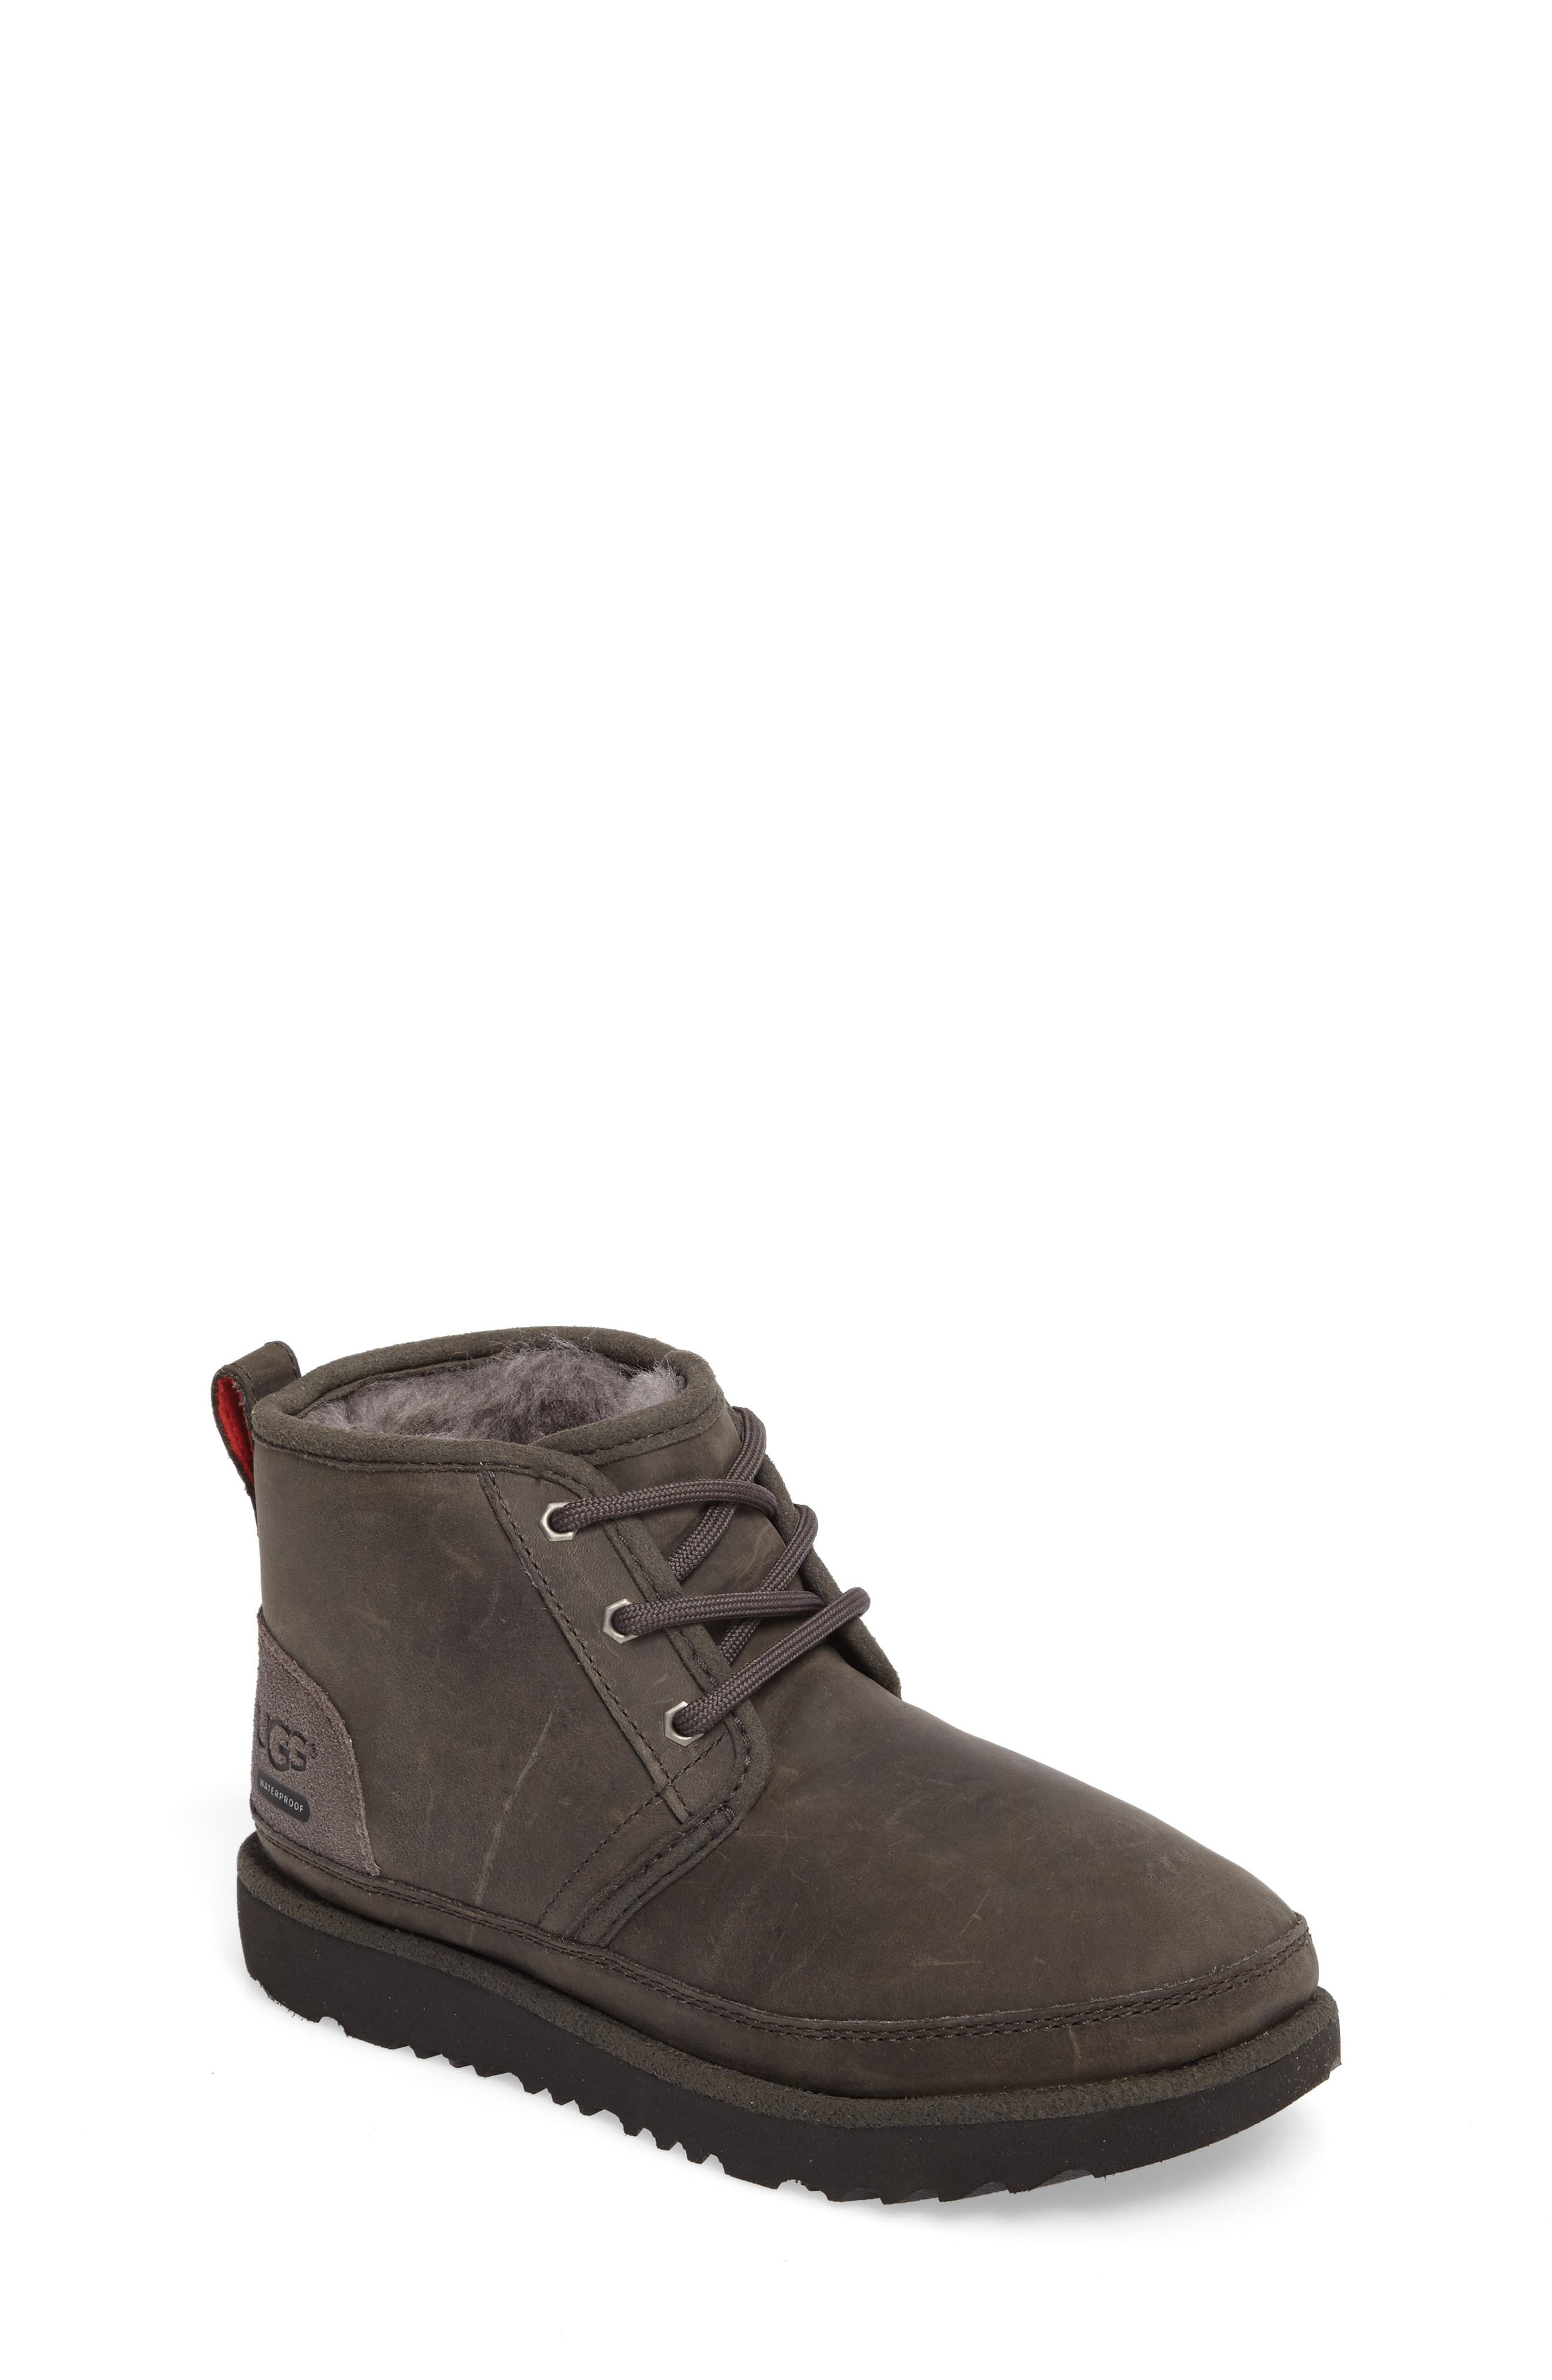 Neumel II Waterproof Chukka,                         Main,                         color, CHARCOAL